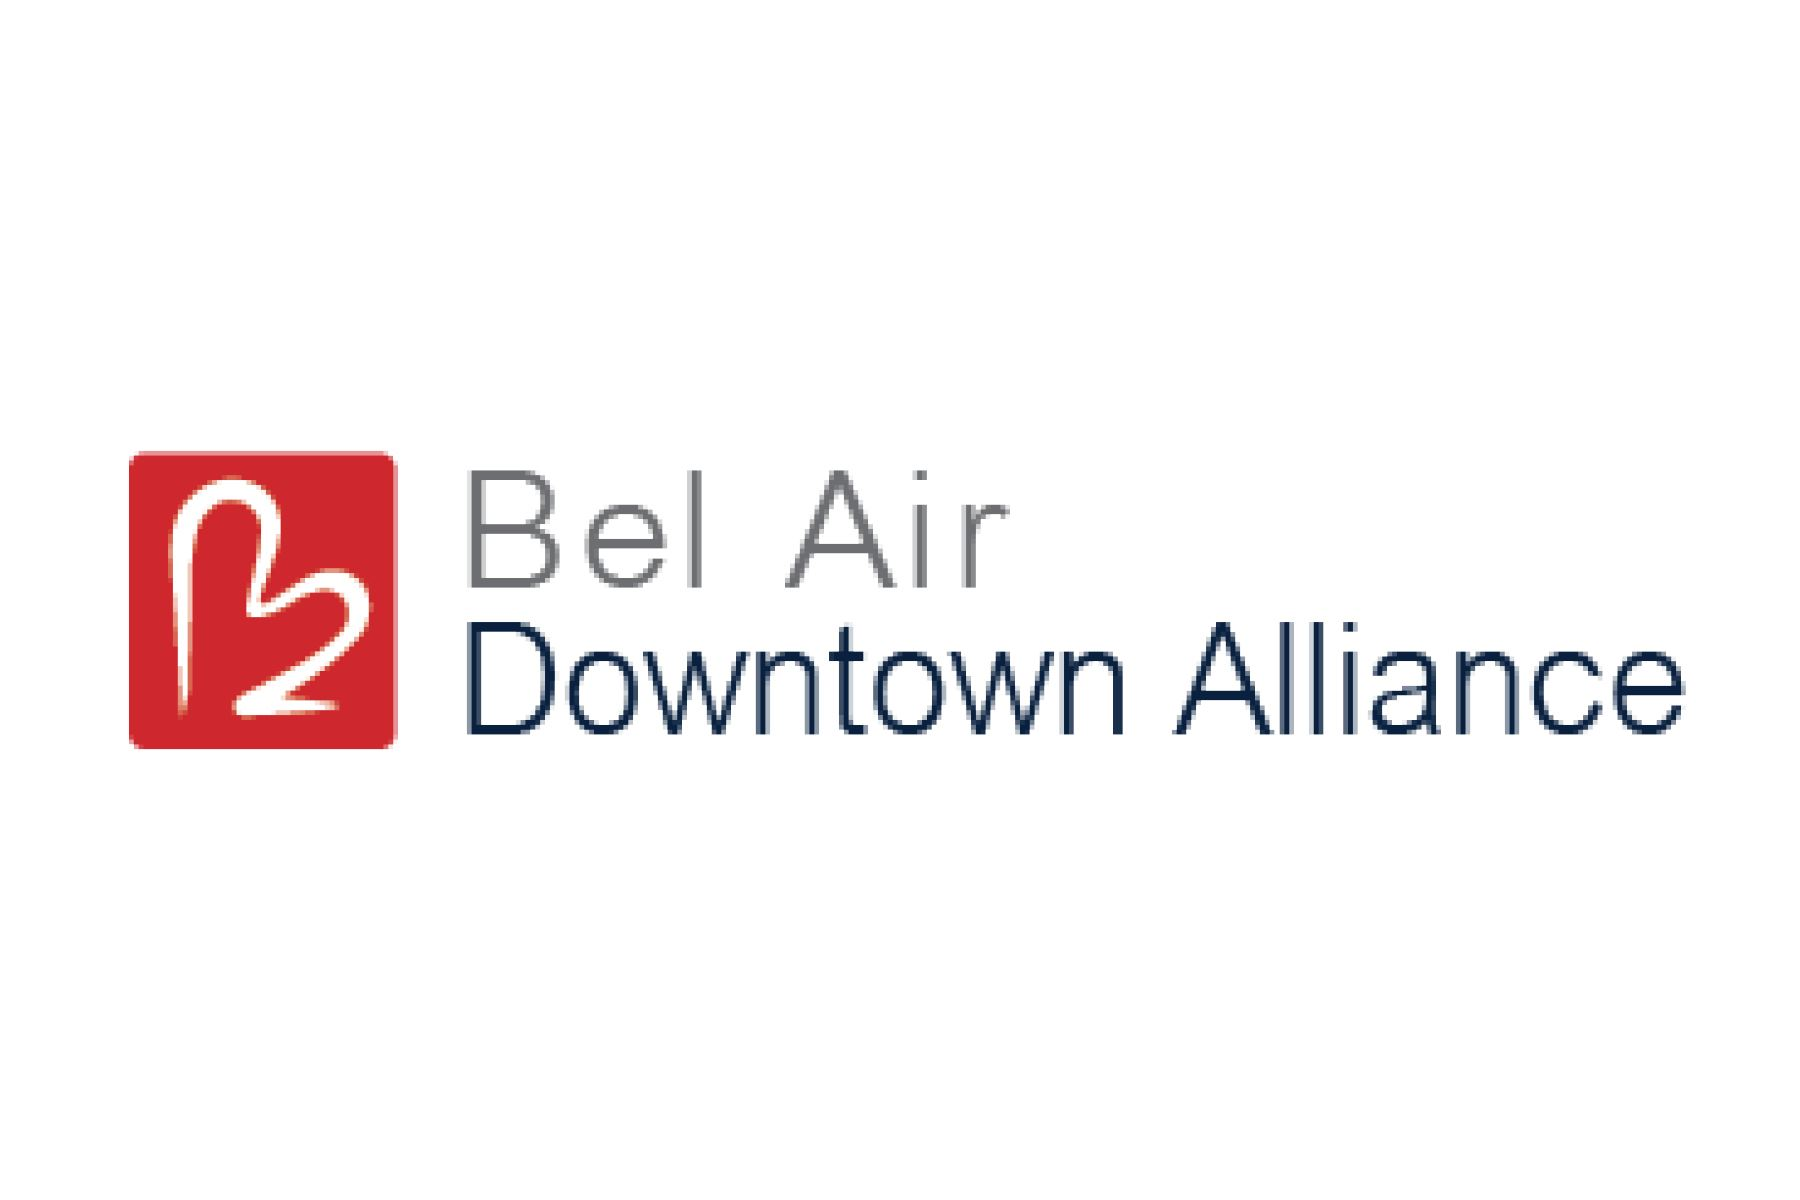 Bel Air Downtown Alliance